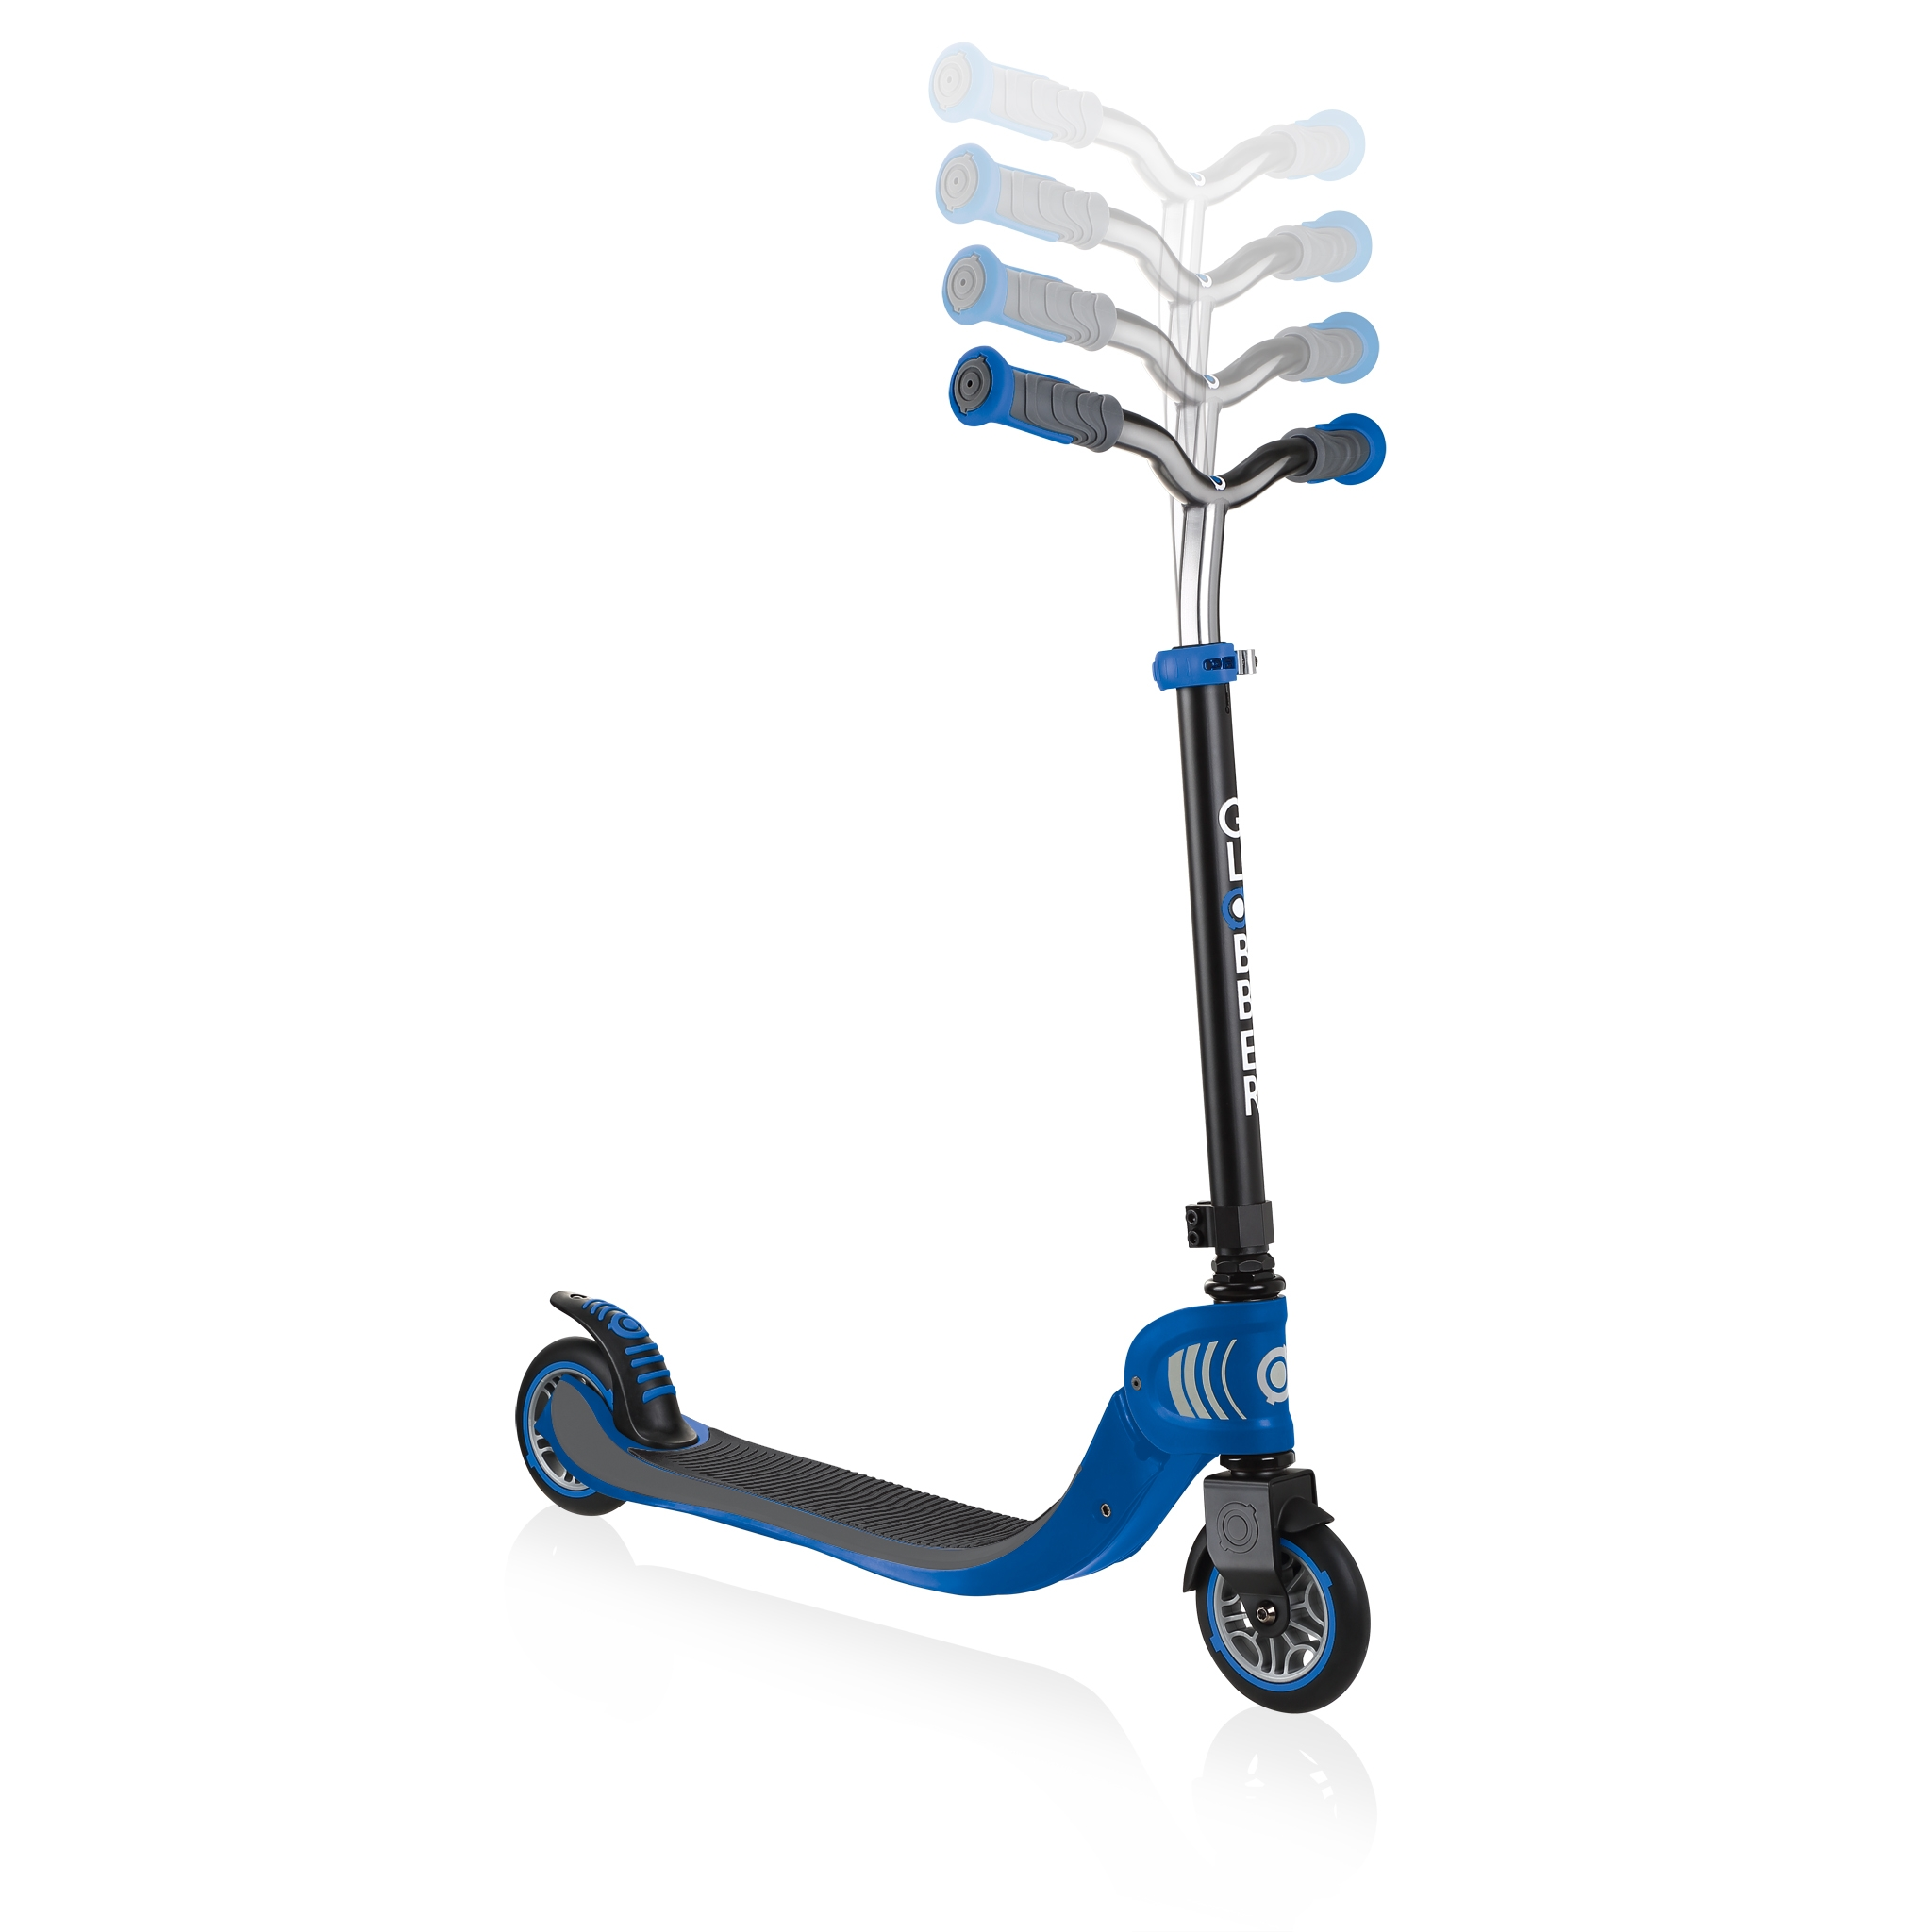 FLOW-FOLDABLE-125-2-wheel-scooter-for-kids-with-adjustable-t-bar-navy-blue